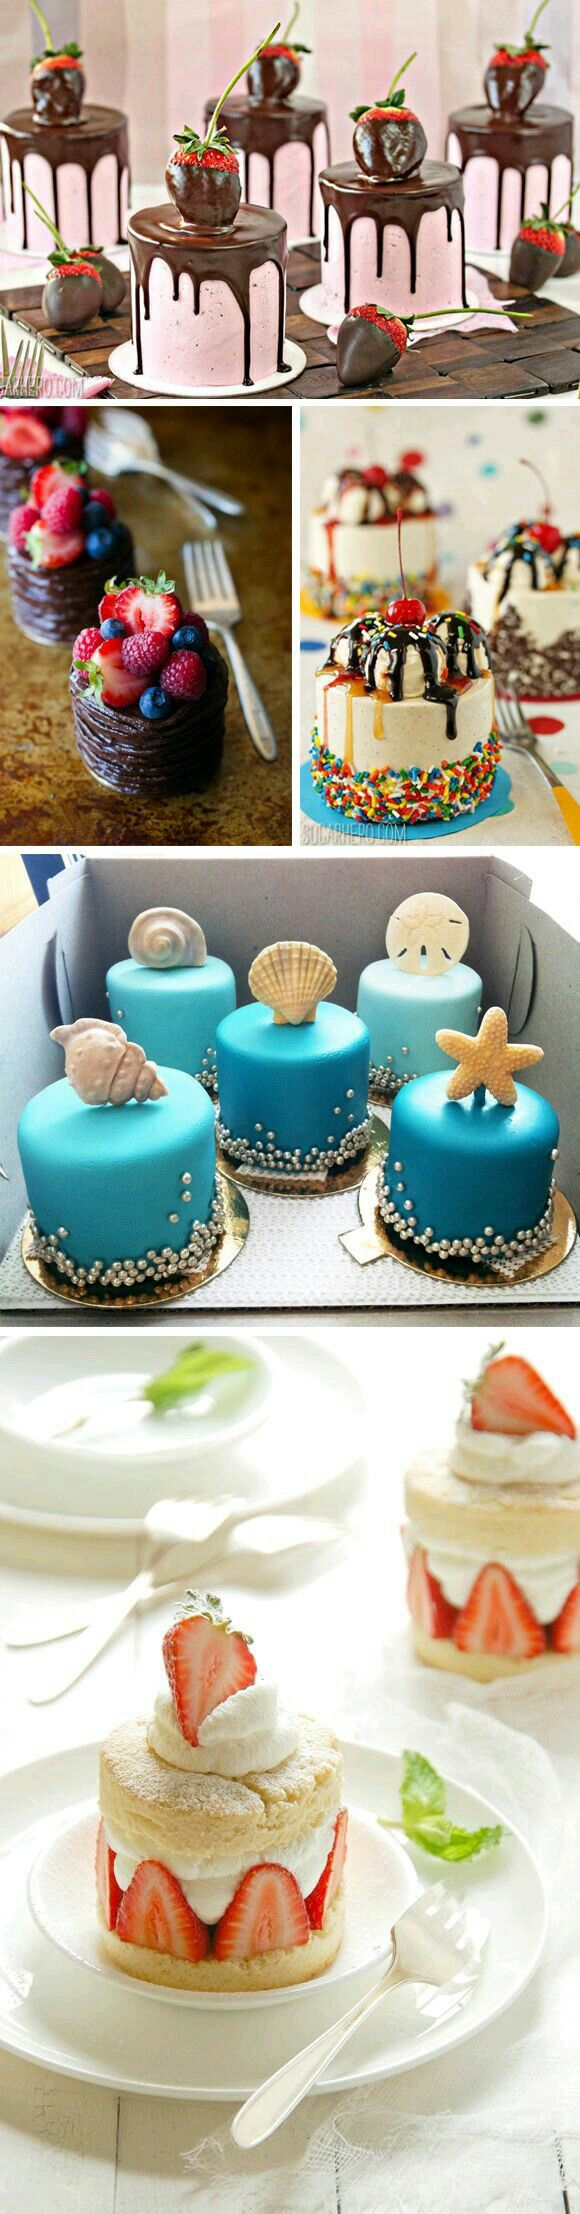 Individual desserts are the best thing since sliced bread! | Mini-cakes | Individual Desserts | Weddings |